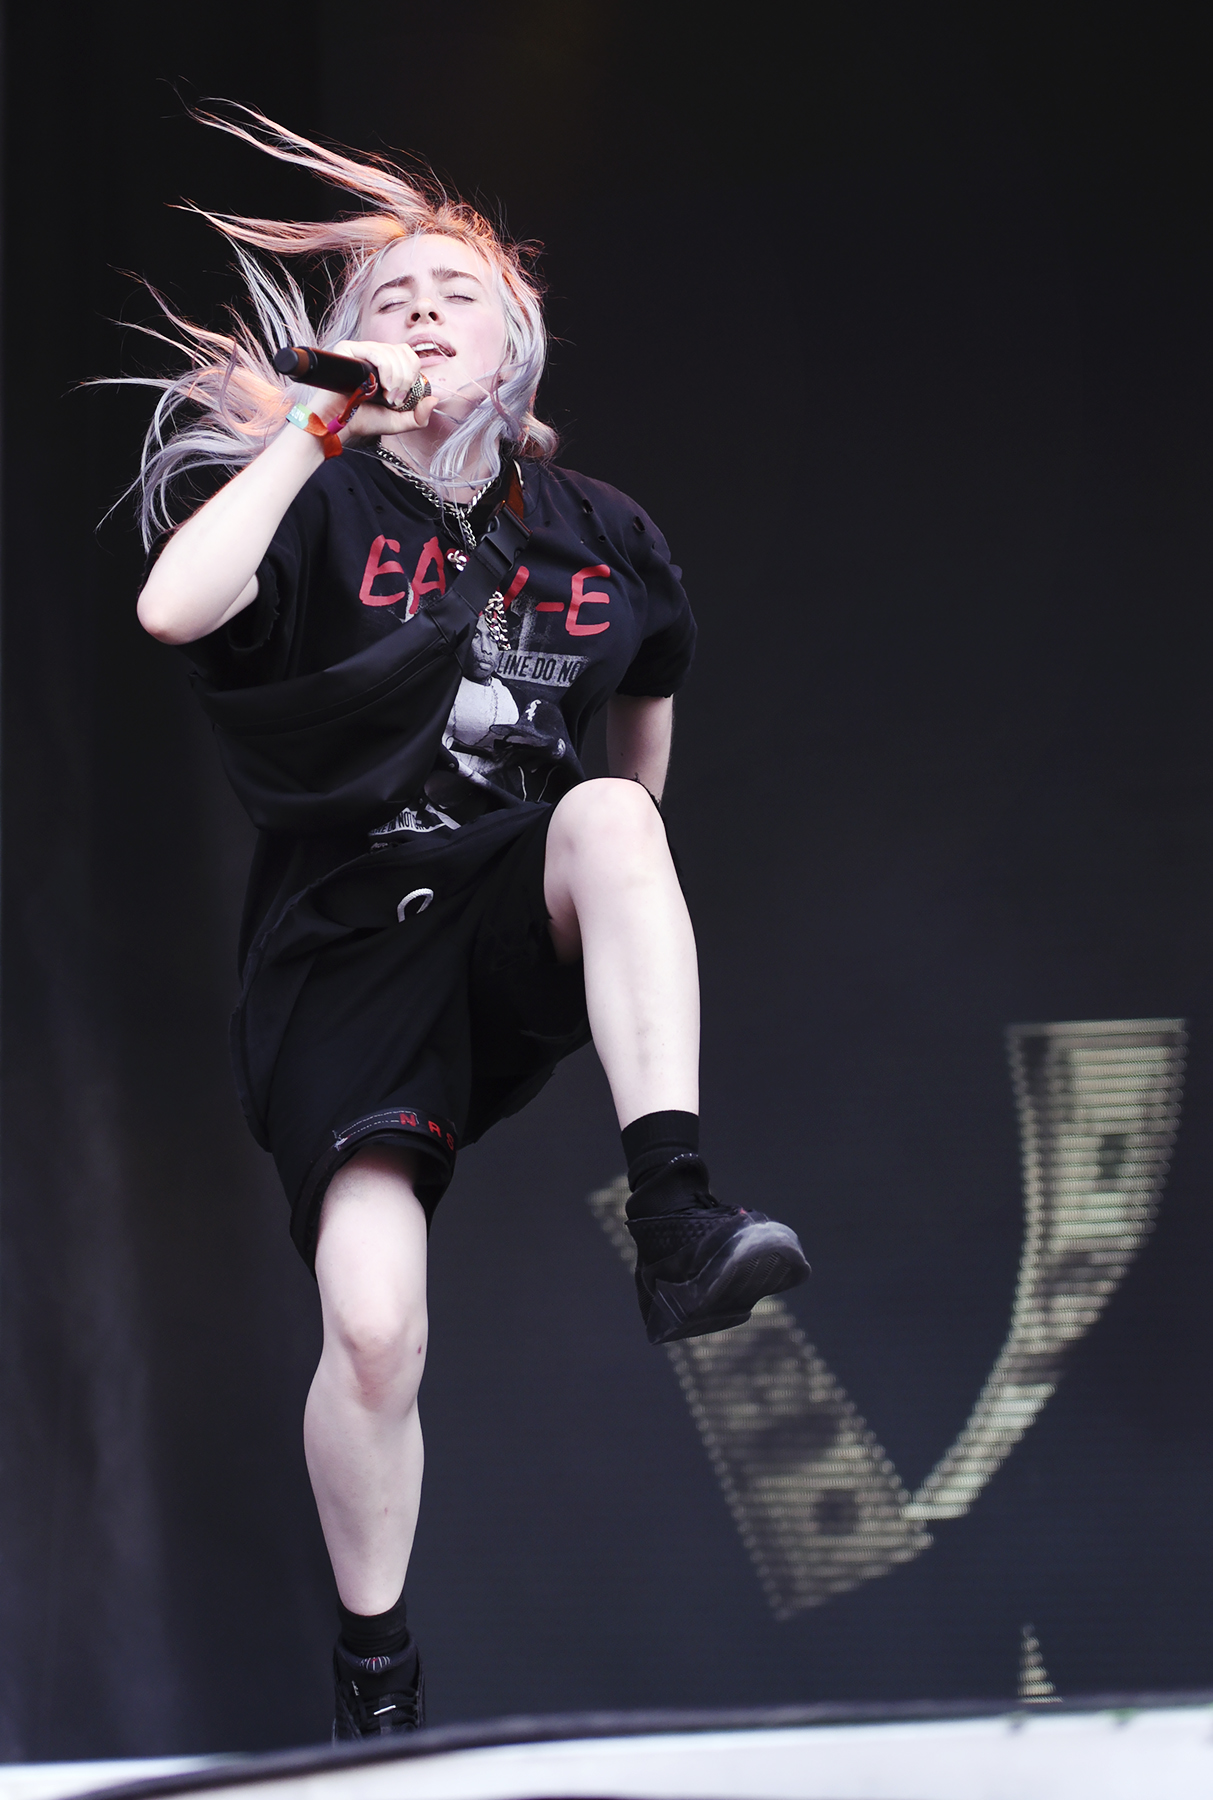 Billie Eilish_001.jpg